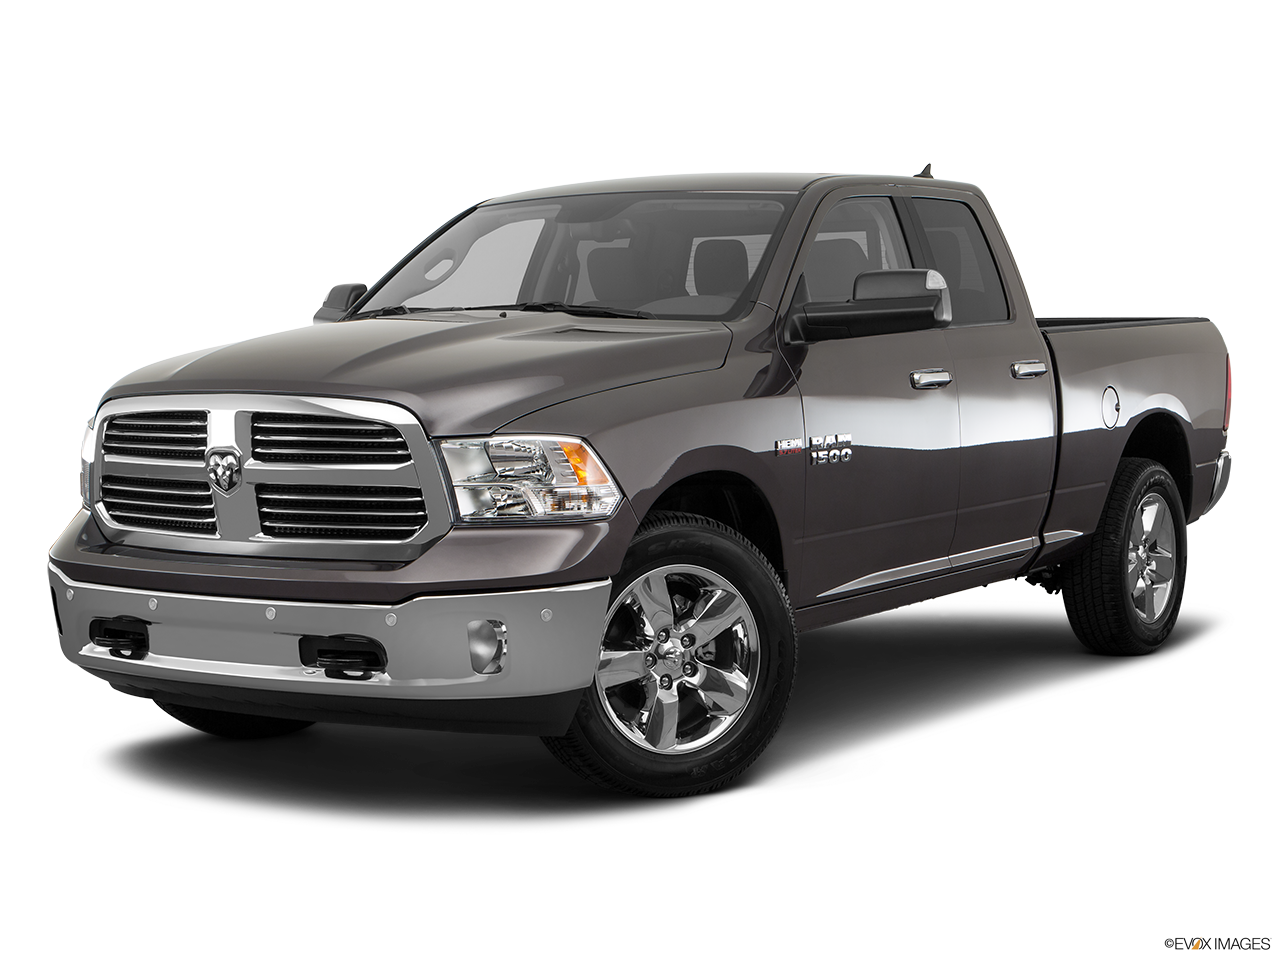 Test Drive A 2017 RAM 1500 at Carl Burger Dodge Chrysler Jeep Ram World in La Mesa